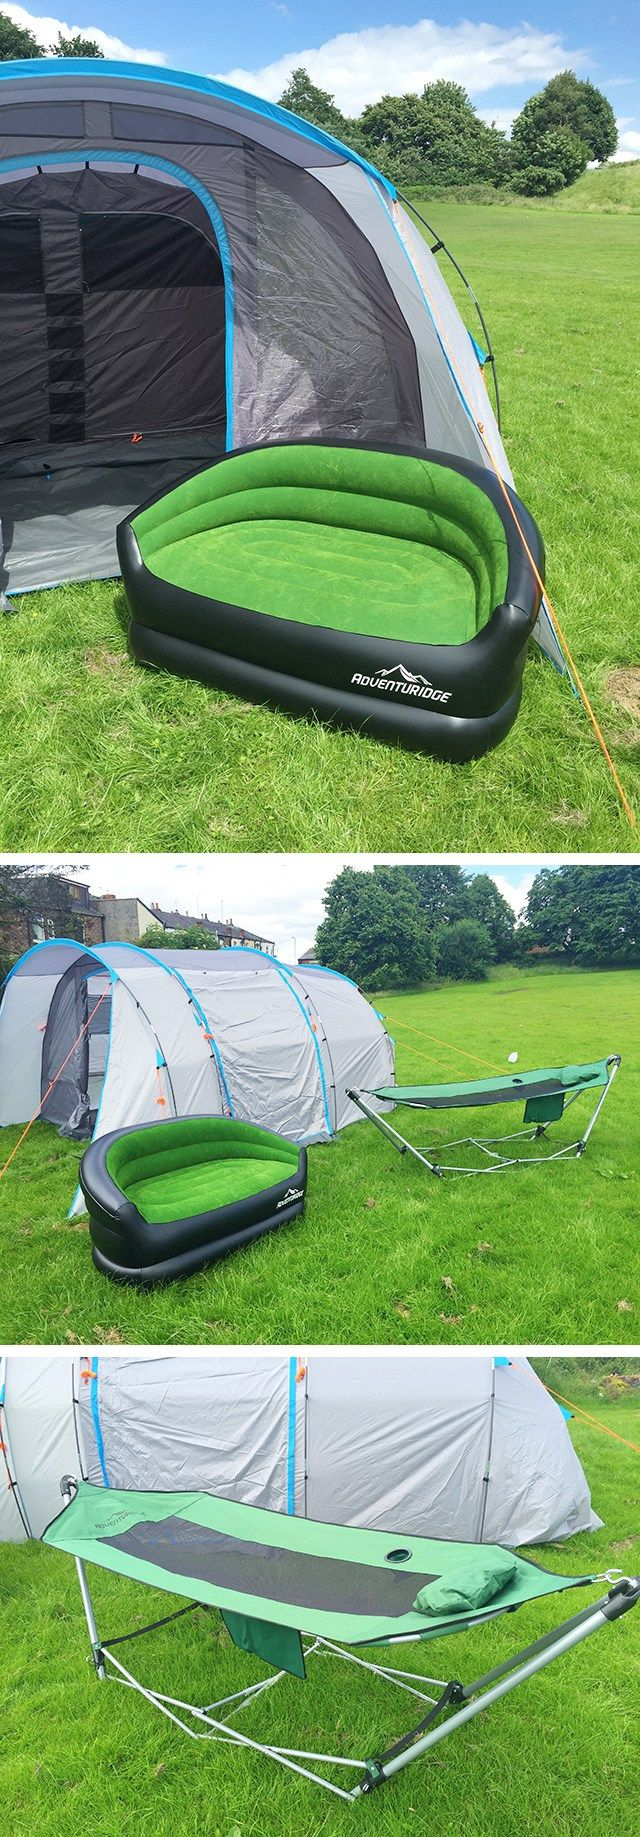 aldi 5 man tent review plus the fab new special buys camping range aldi 5 man tent review plus the fab new special buys camping range      rh   pinterest